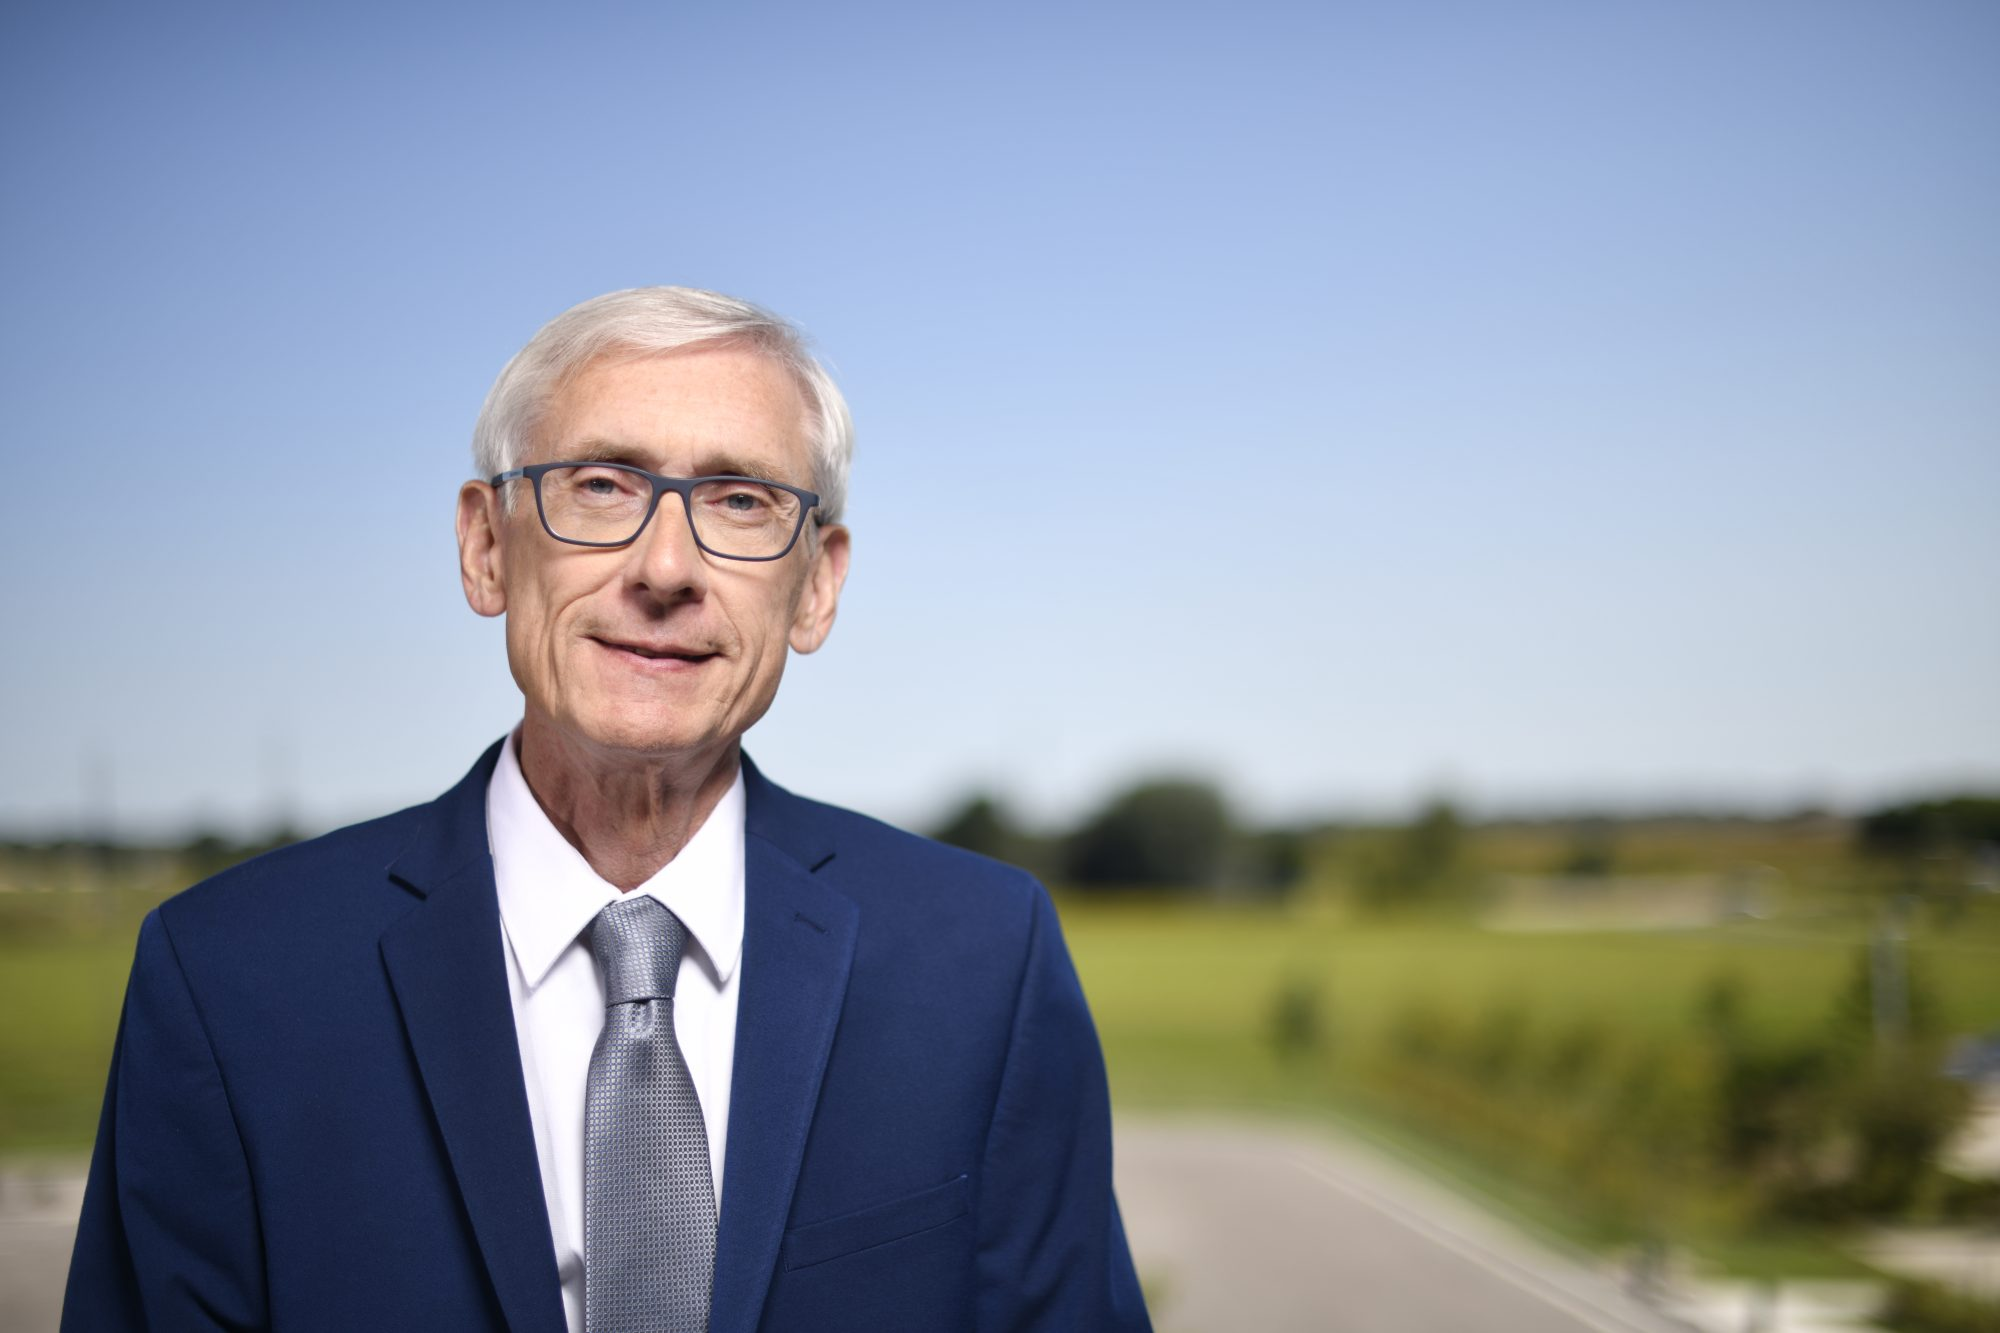 Gov. Evers Signs Executive Order #17 Relating to the Creation of the Governor's Health Equity Council